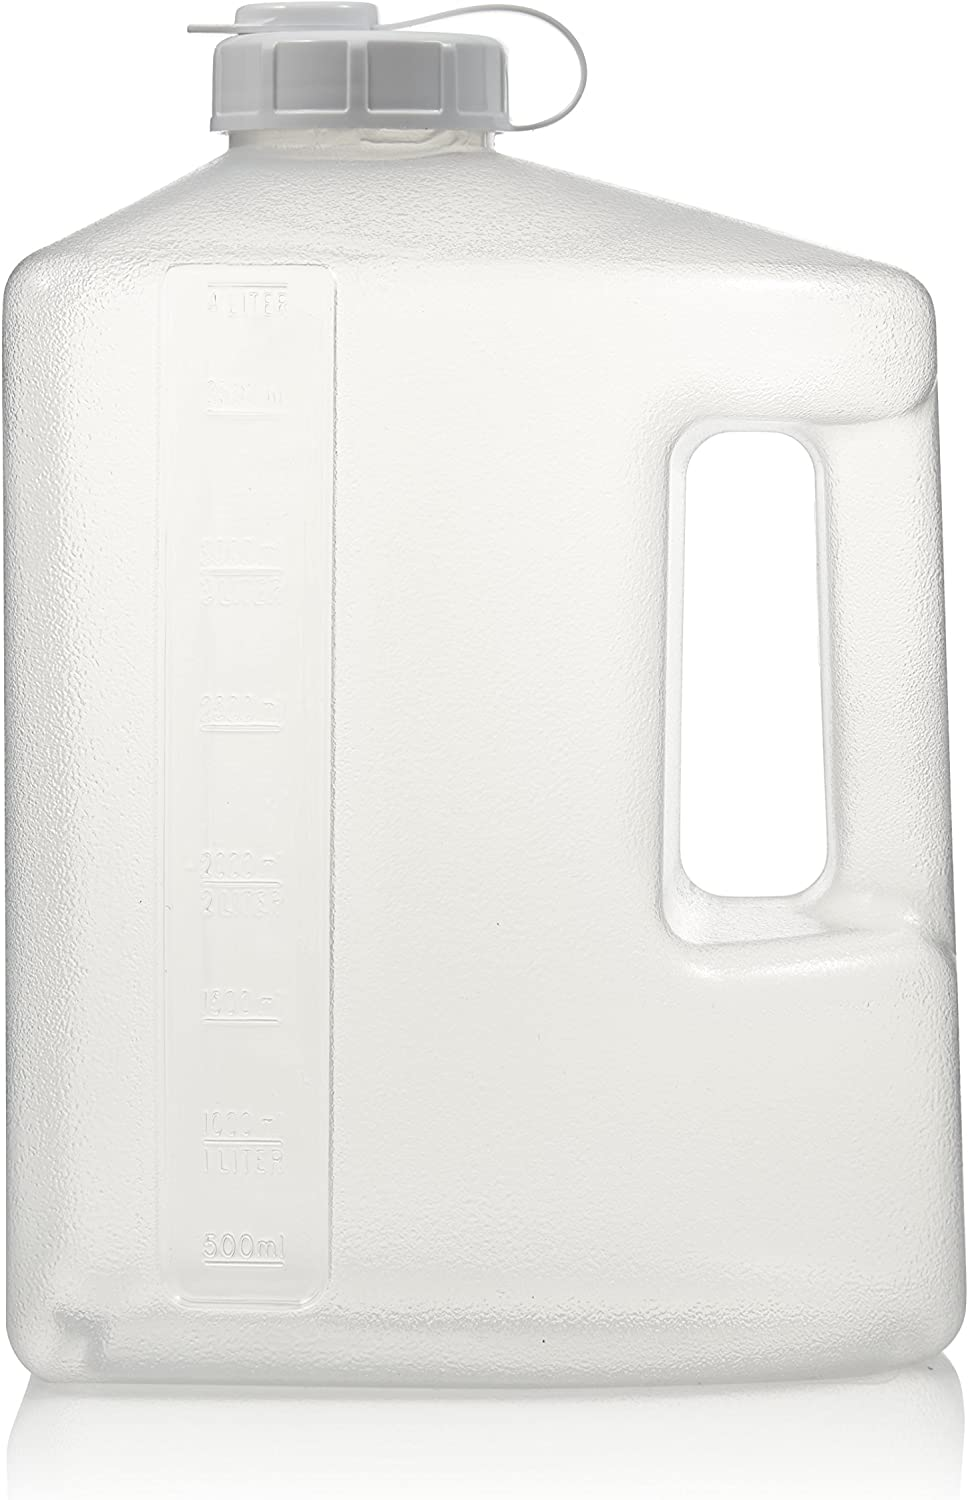 Arrow Home Products 15405 1 Gallon Refrigerator Bottle, Clear